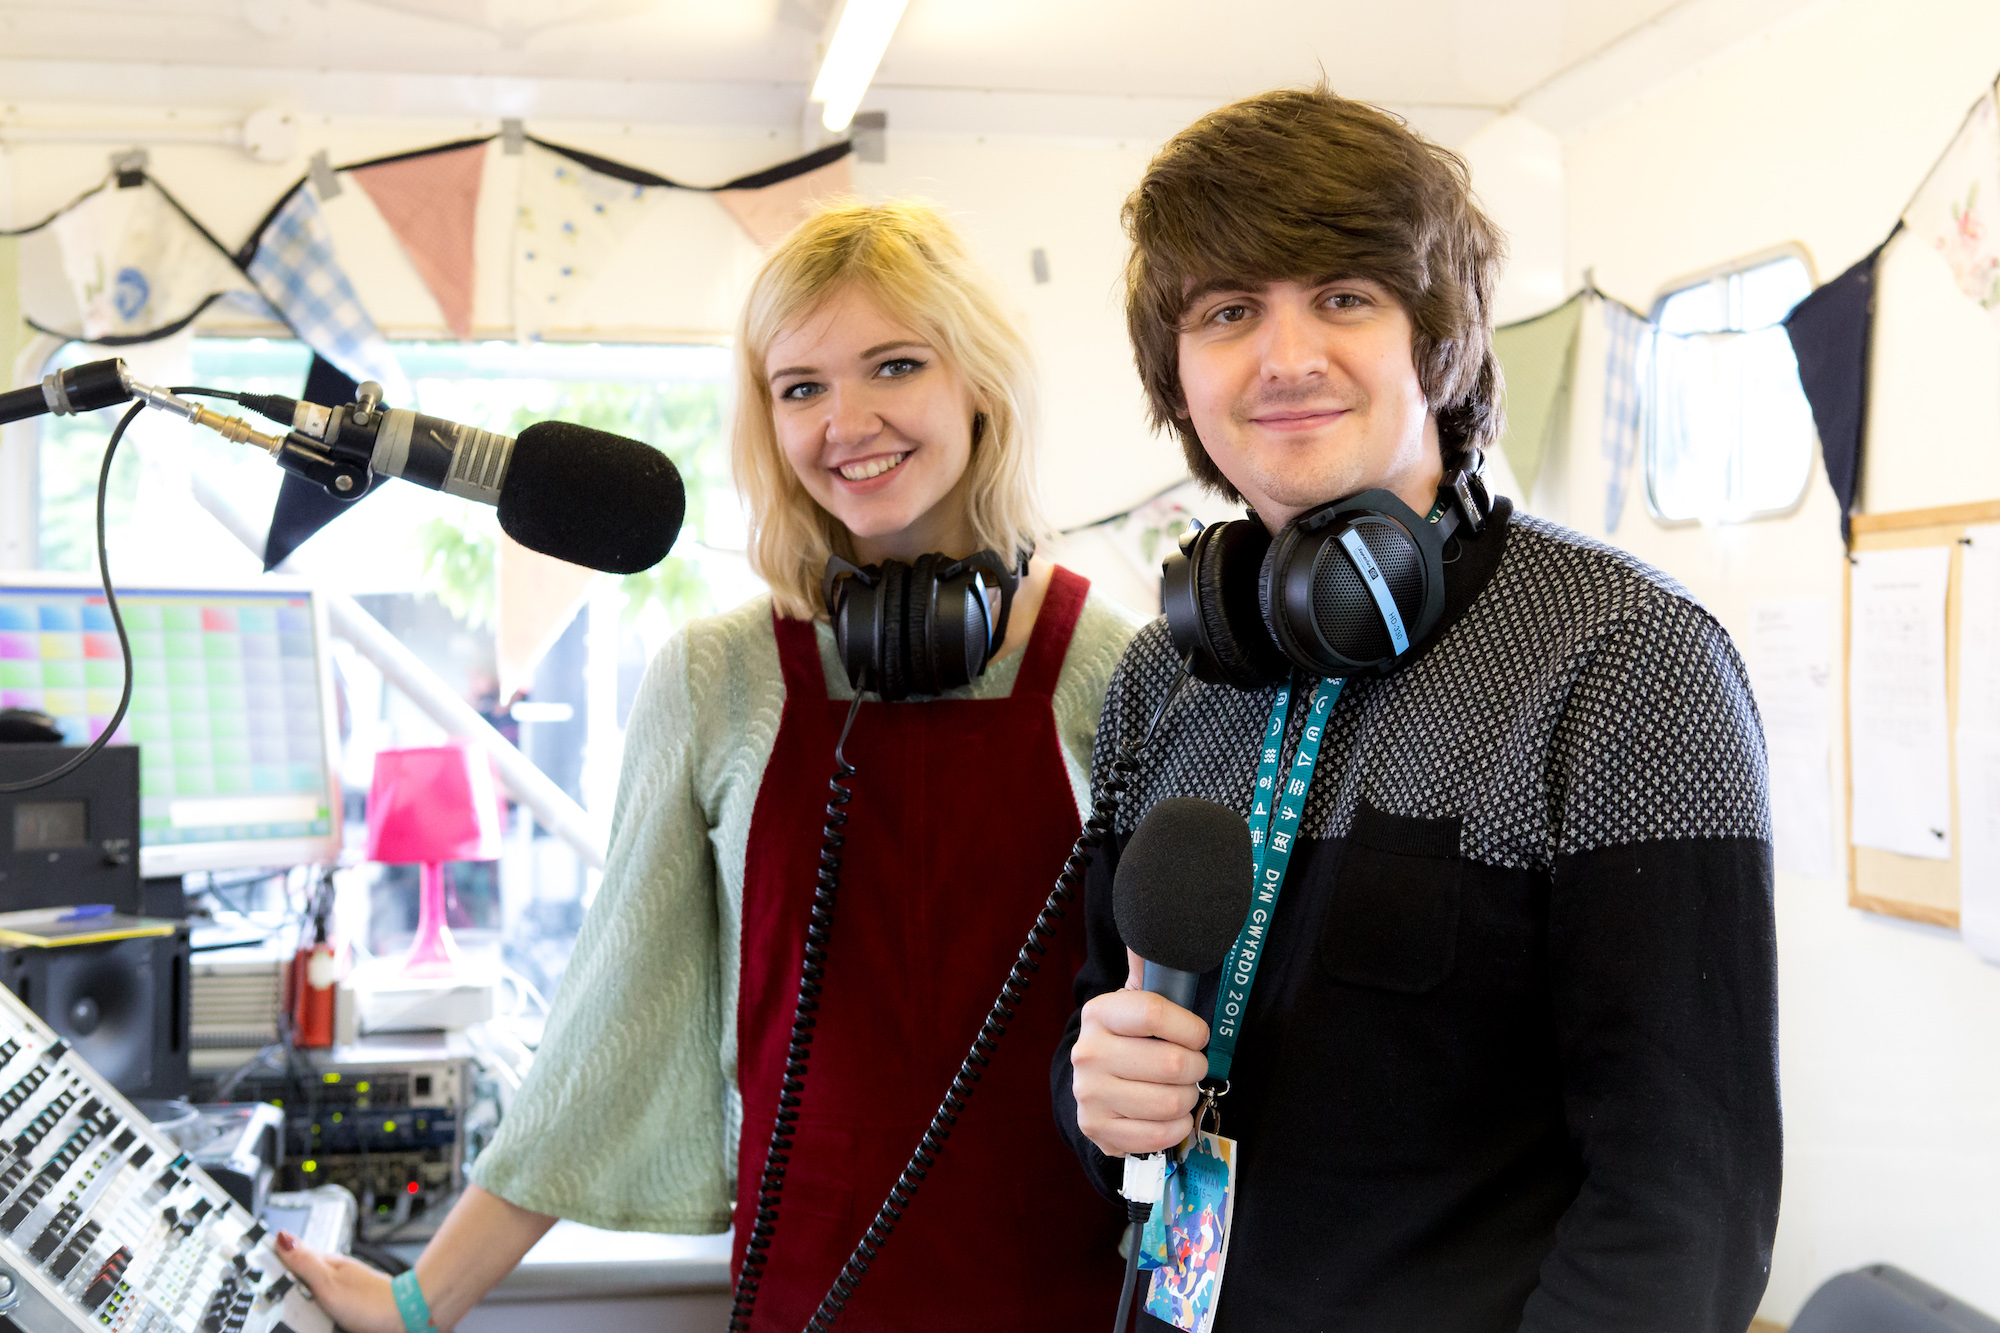 Green Man radio presenters